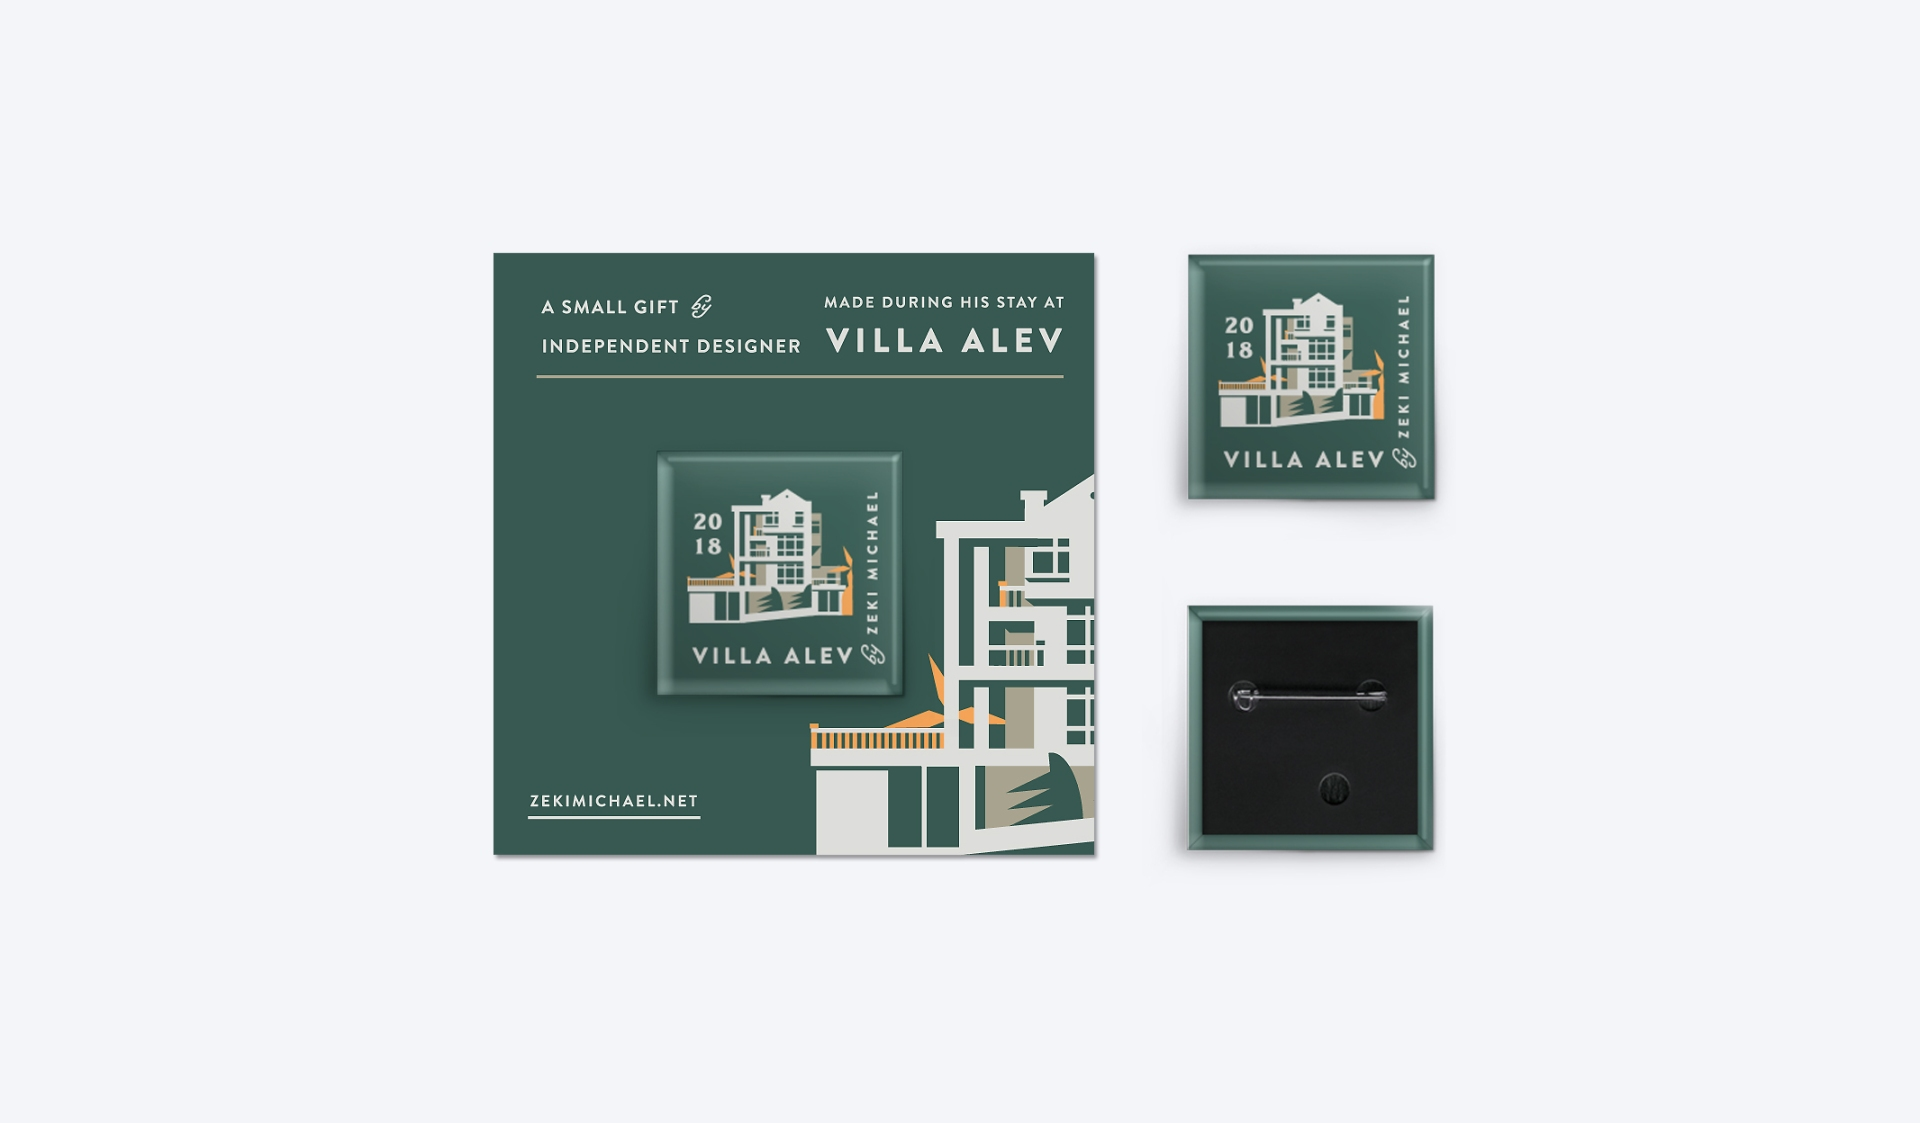 zeki-michael-badge-villa-alev-kalkan-turkey-design-illustration-travel-journey-journal.jpg